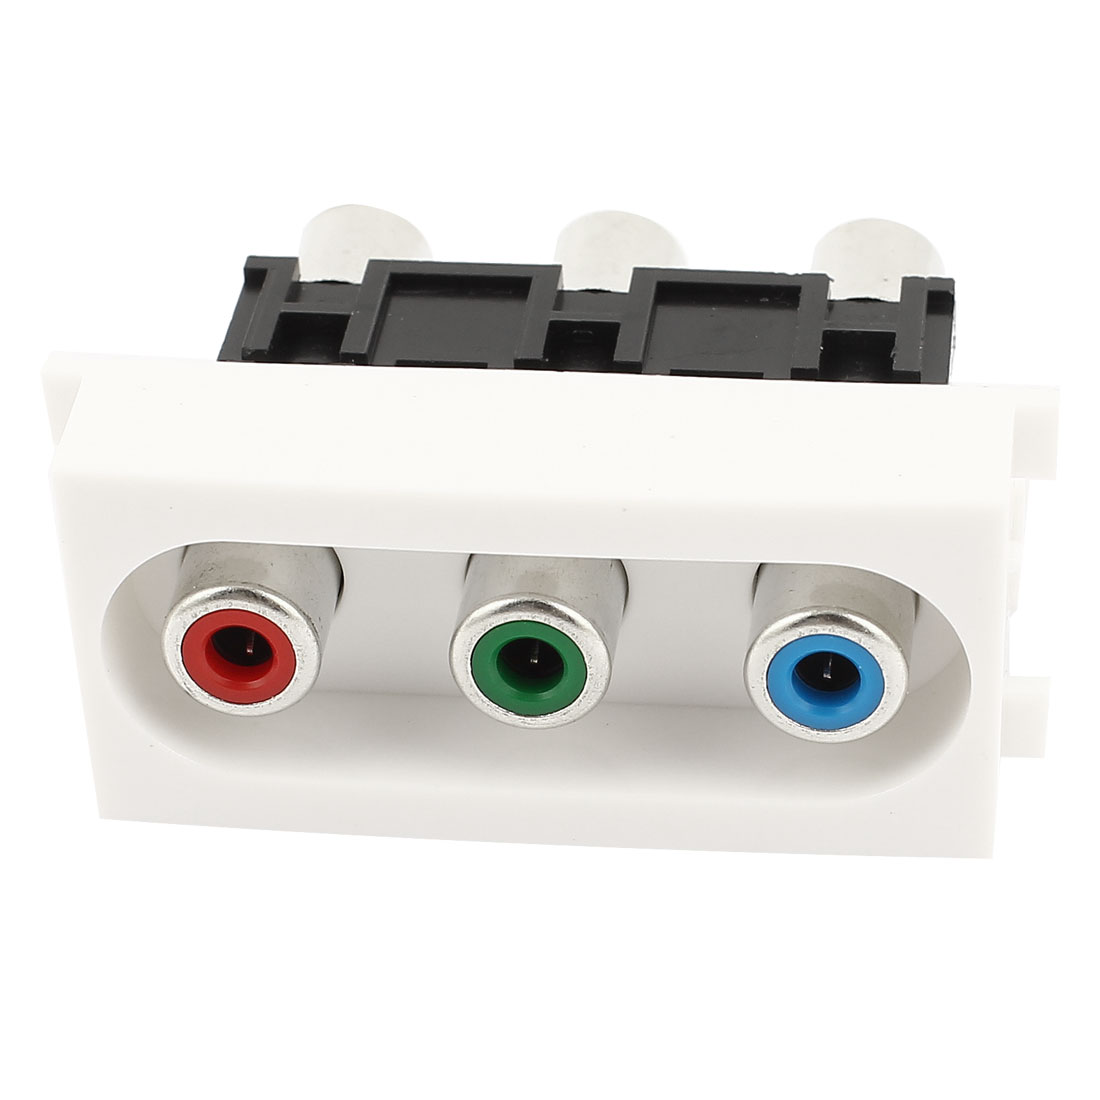 AV YPbPr 3x RCA Female to Female Module Wall Plate Outlet Socket Adapter White